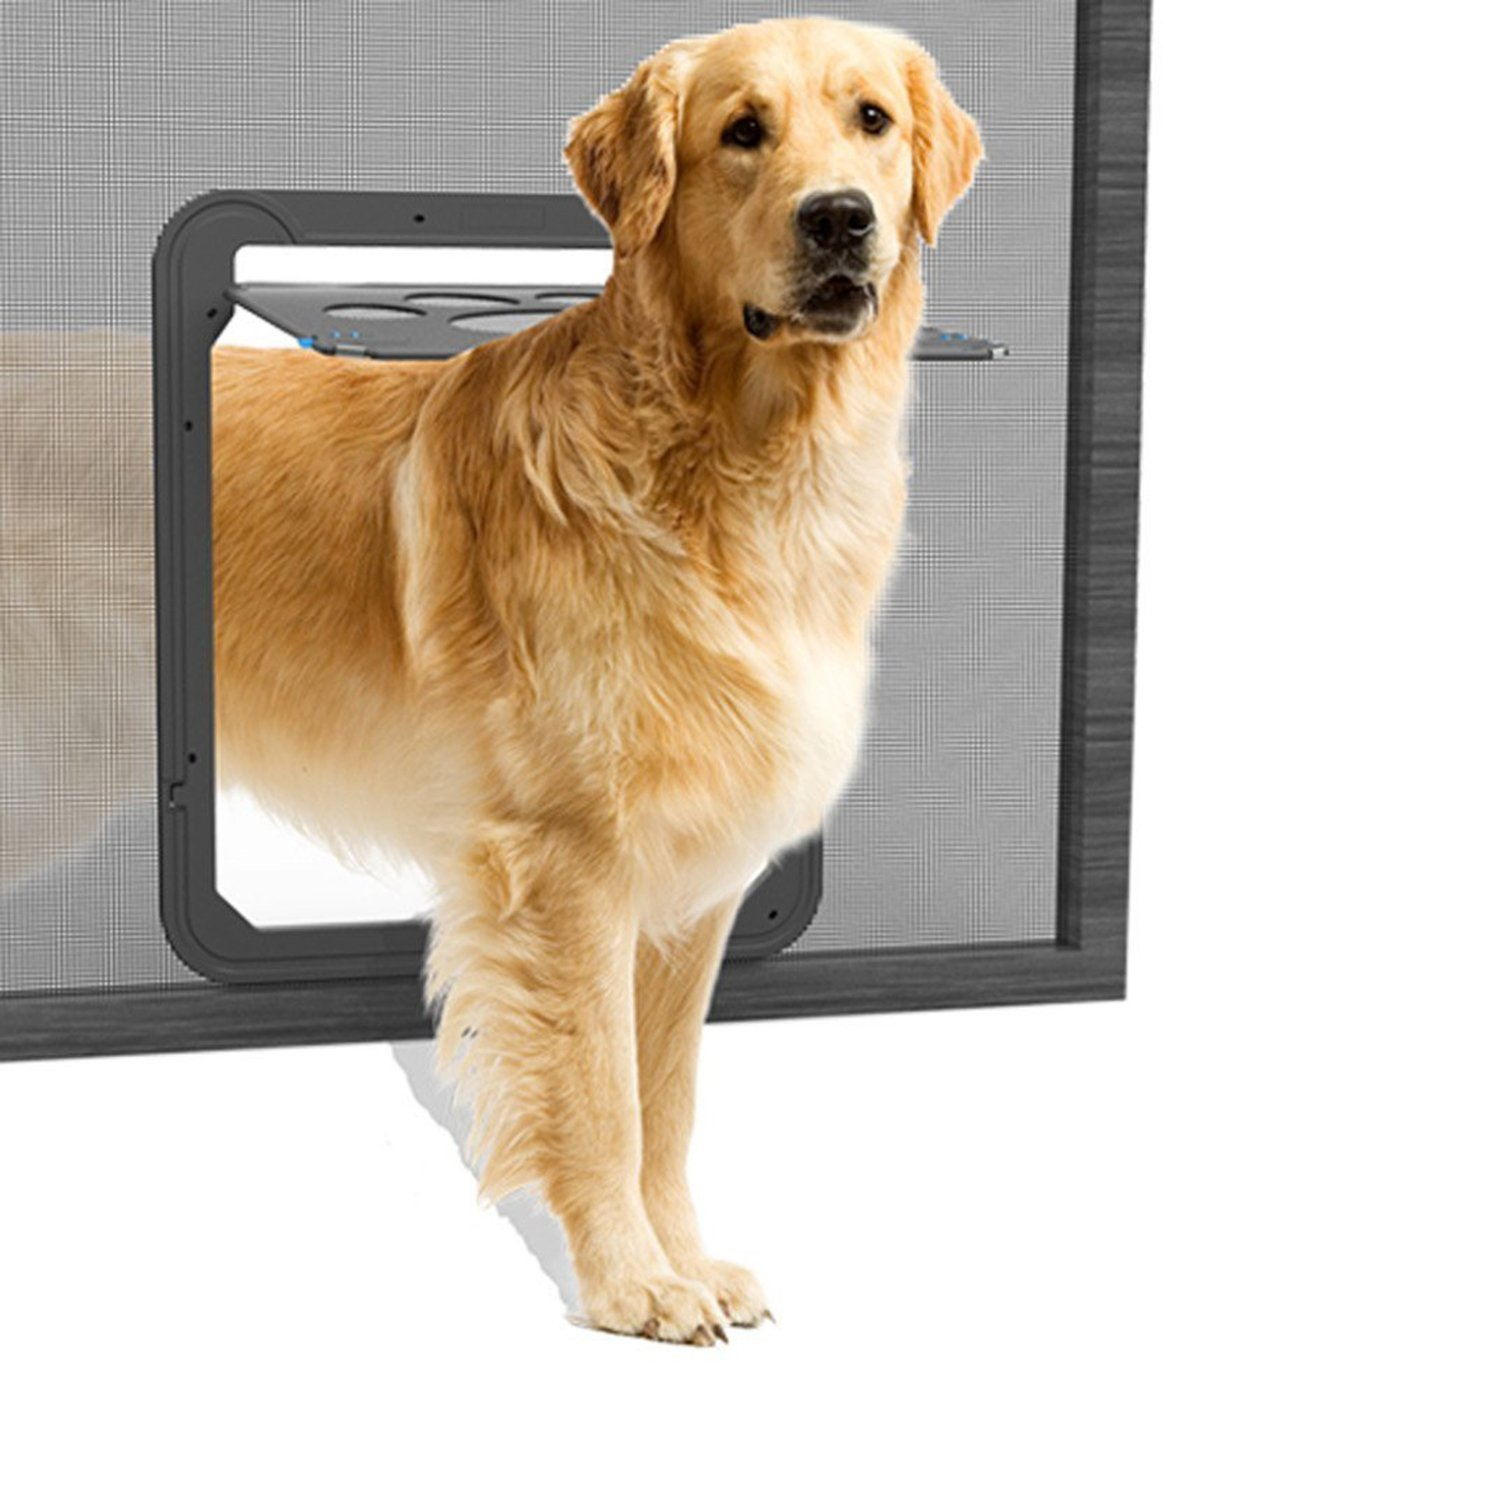 Cheap Dog Pet Door Find Dog Pet Door Deals On Line At Alibaba